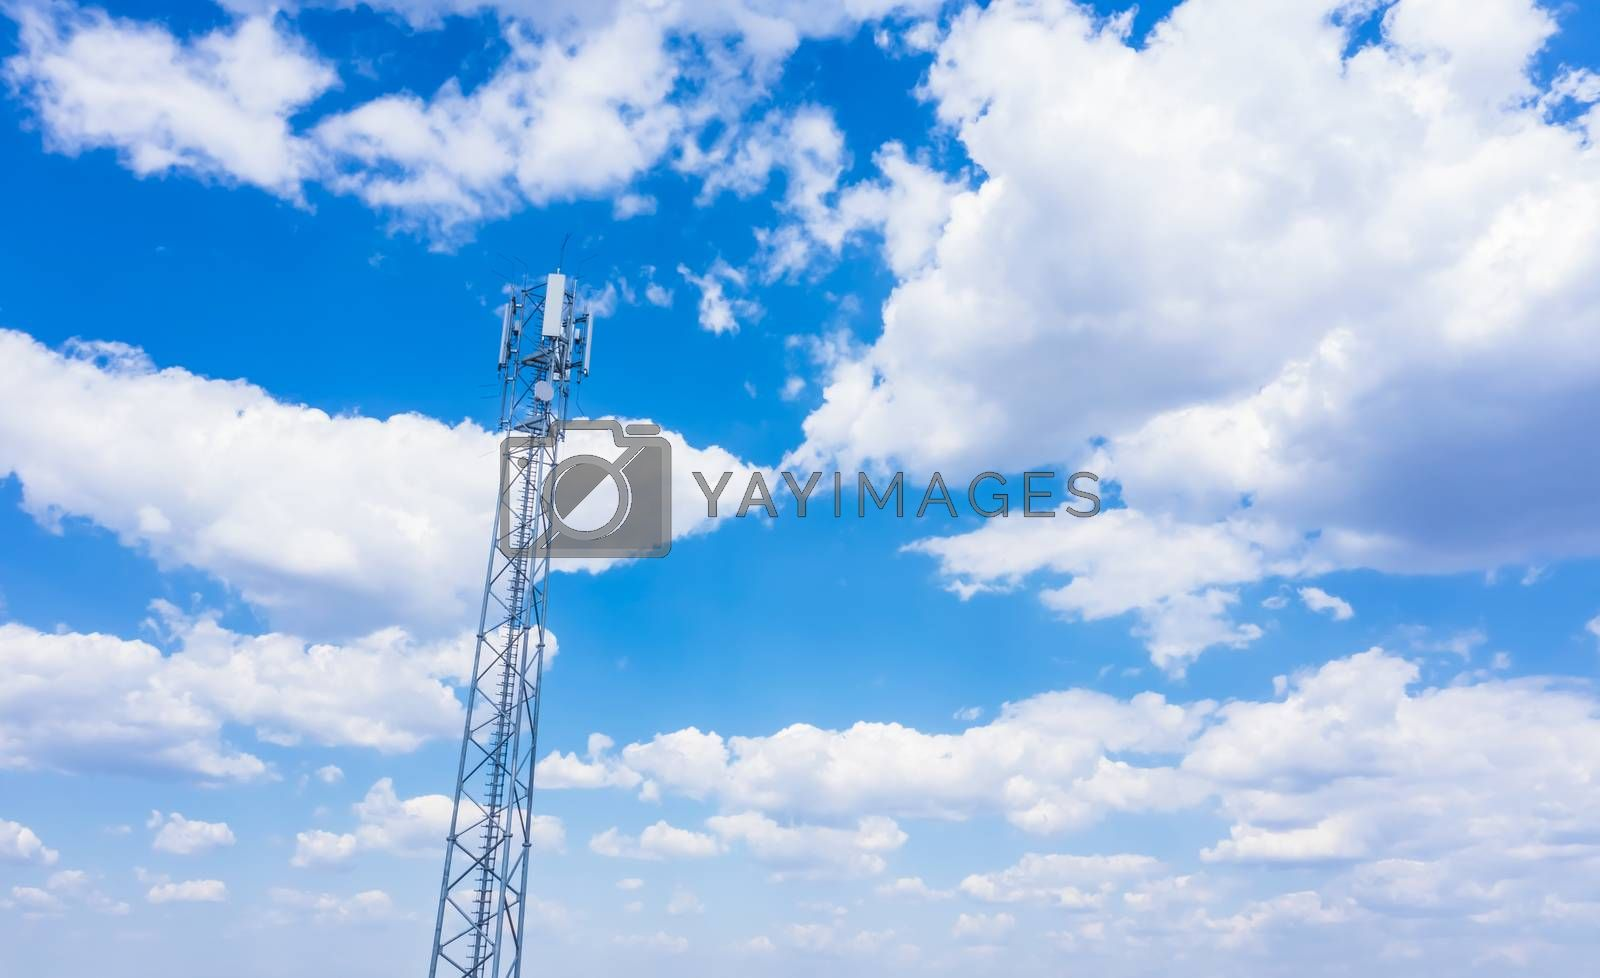 Telecommunication tower of 4G and 5G cellular. Cell Site Base Station. Wireless Communication Antenna Transmitter. Telecommunication tower with antennas against blue sky background.